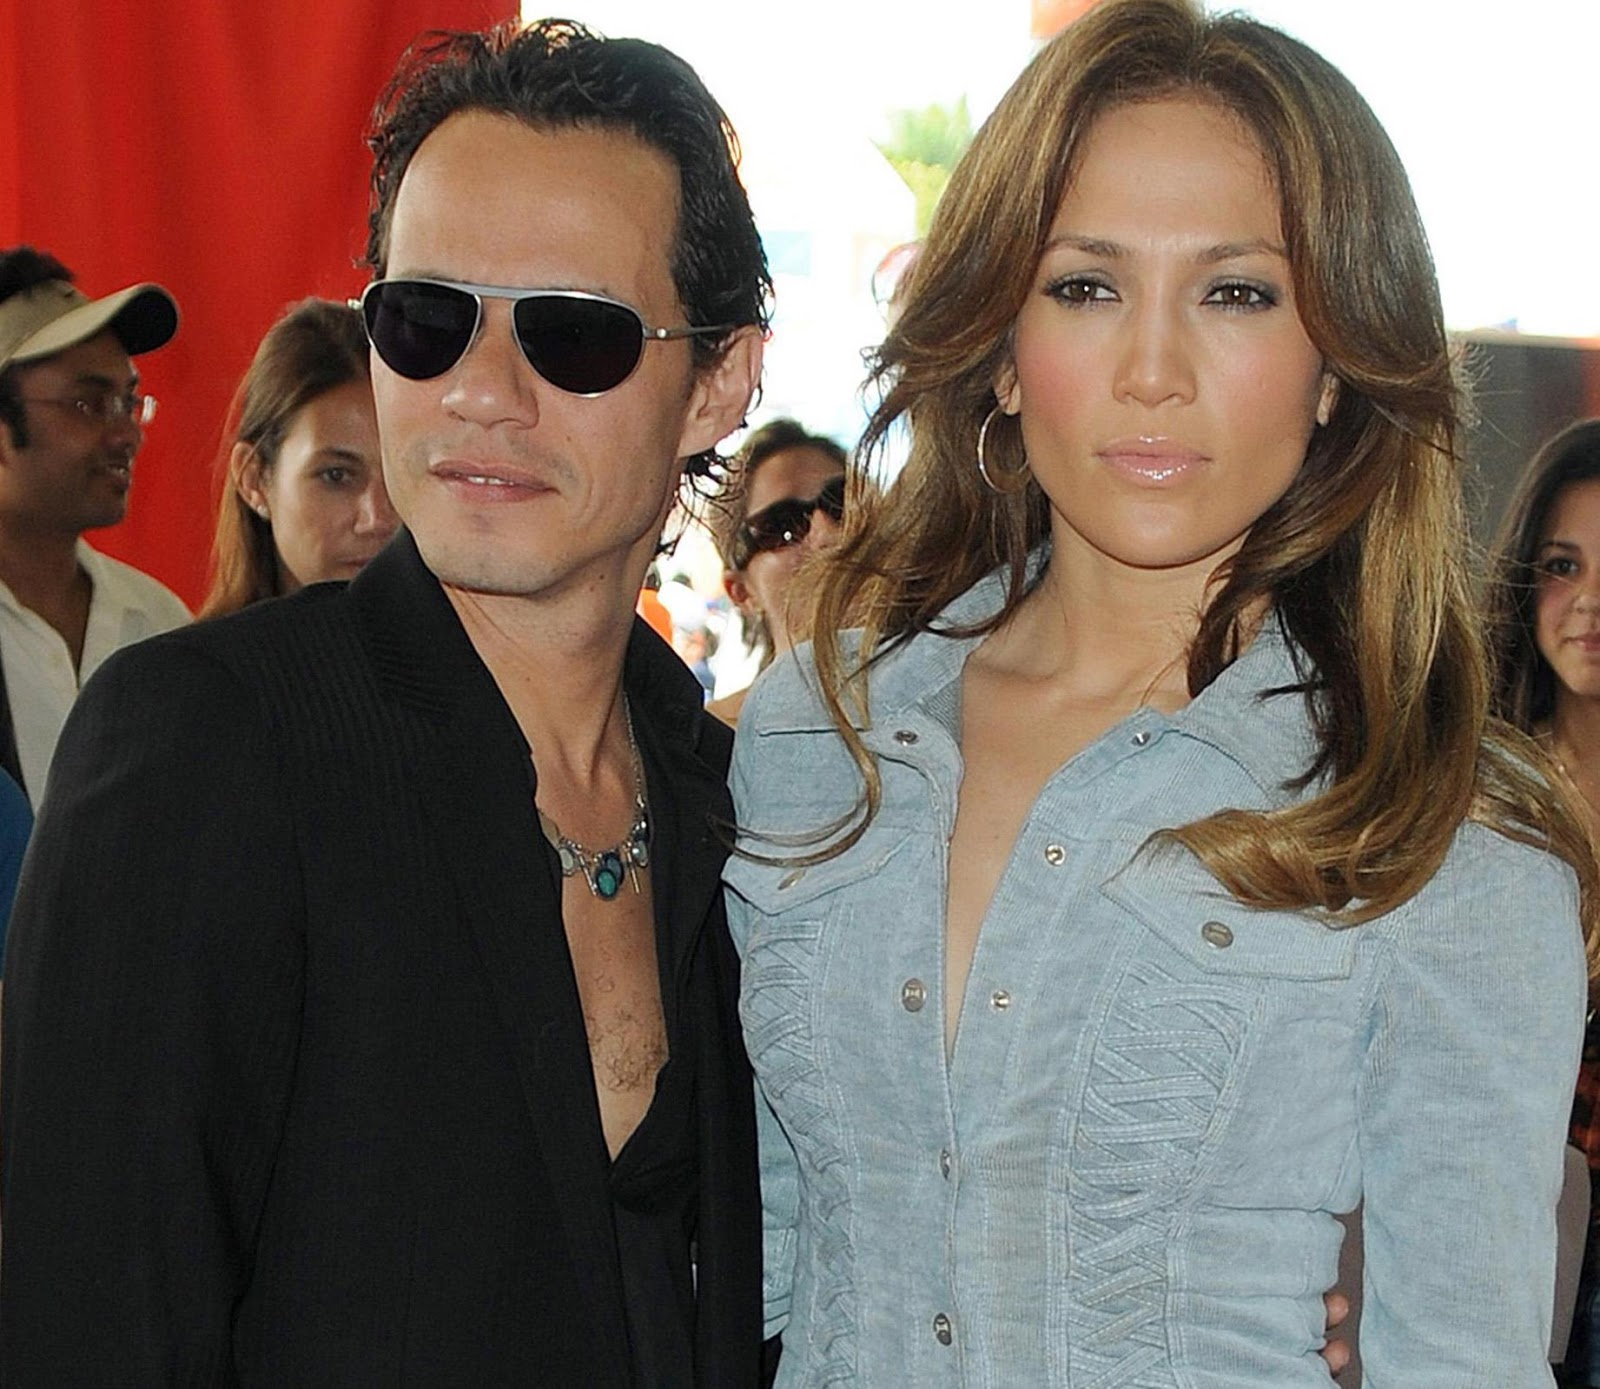 http://3.bp.blogspot.com/-2RaThg6UcsU/UP57msYCZ_I/AAAAAAAAwt4/SbBlKAs7kY0/s1600/jennifer-lopez-marc-anthony-24548.jpeg